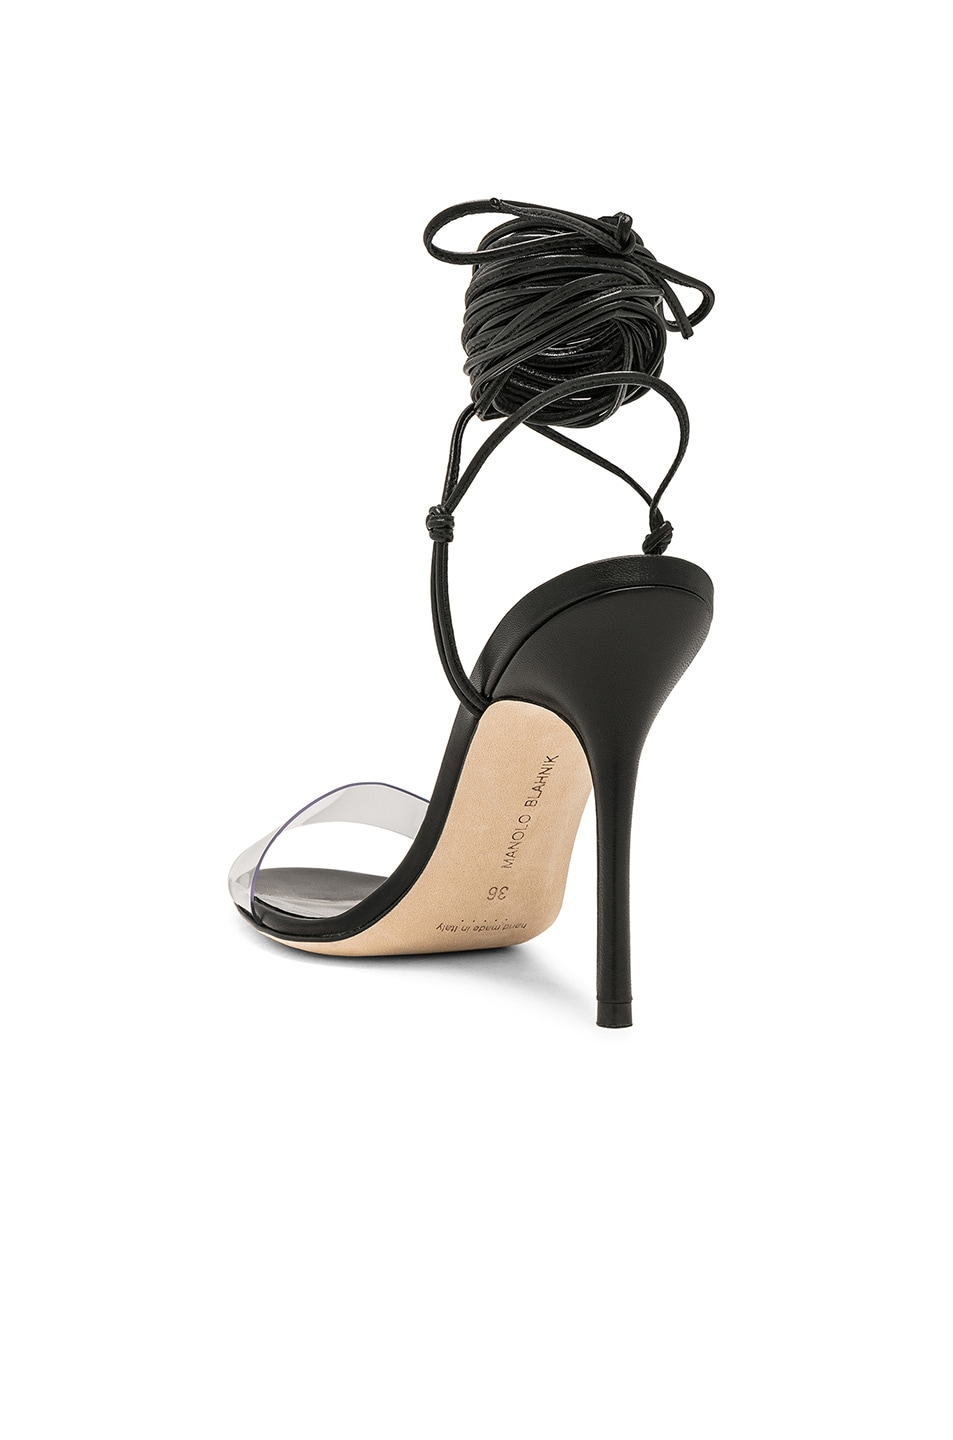 Image 3 of Manolo Blahnik Priscestro 105 Heel in Black & Clear